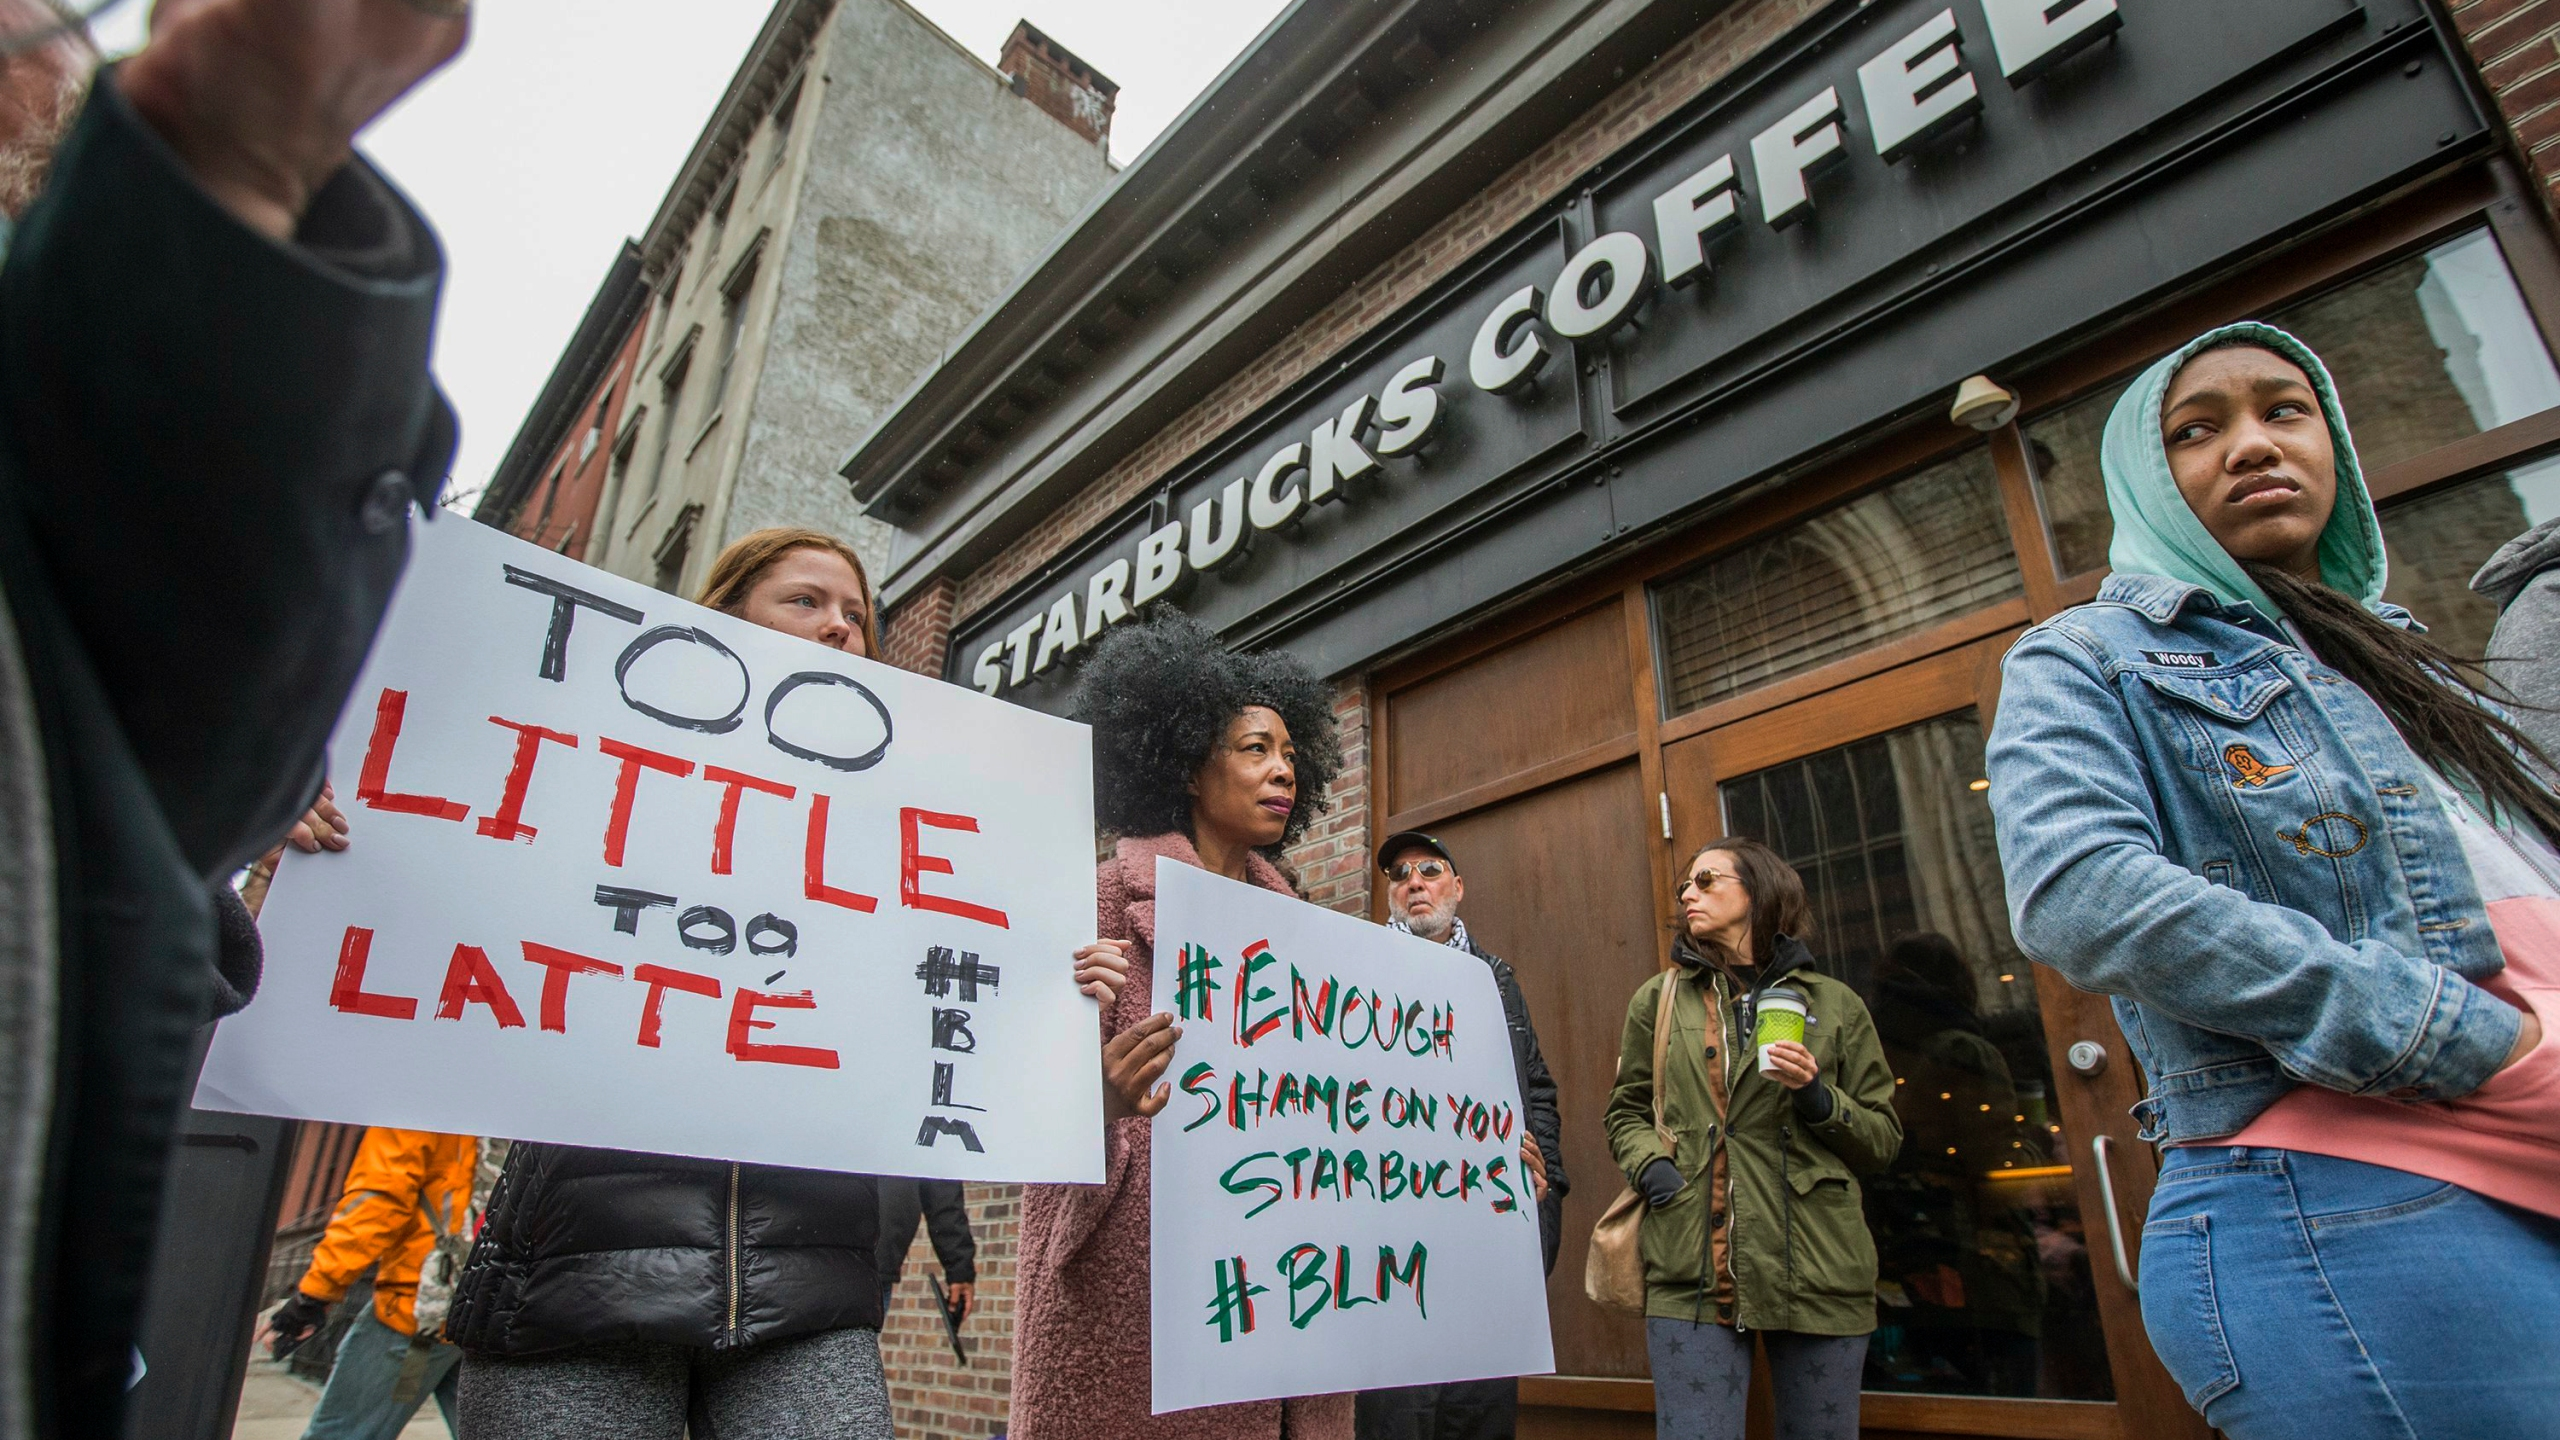 Starbucks-Black_Men_Arrested_27525-159532.jpg97901369